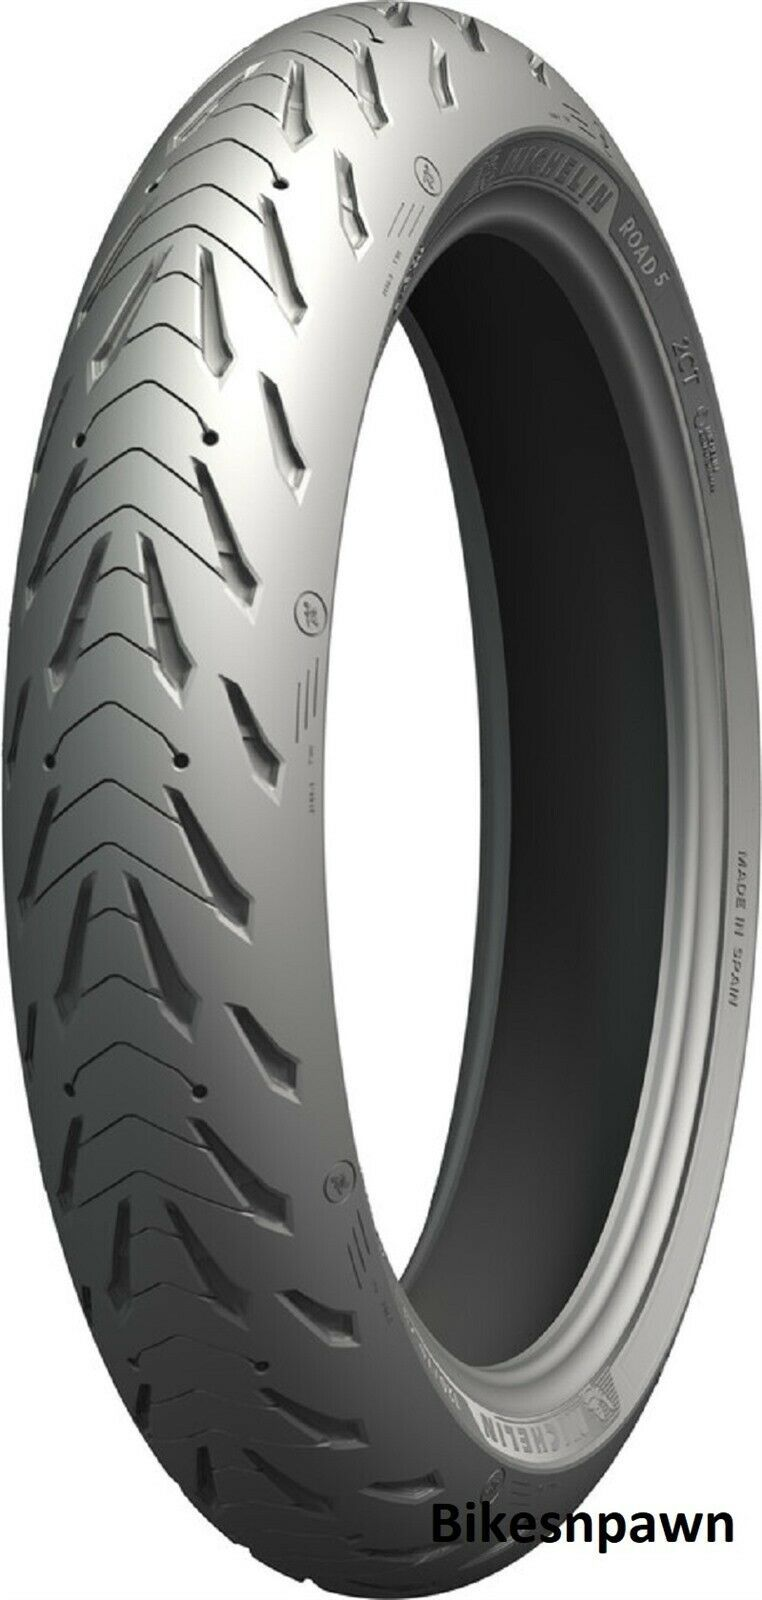 New Michelin Pilot Road 5 GT 120/70ZR18 Front Radial Motorcycle Tire 59W 38133